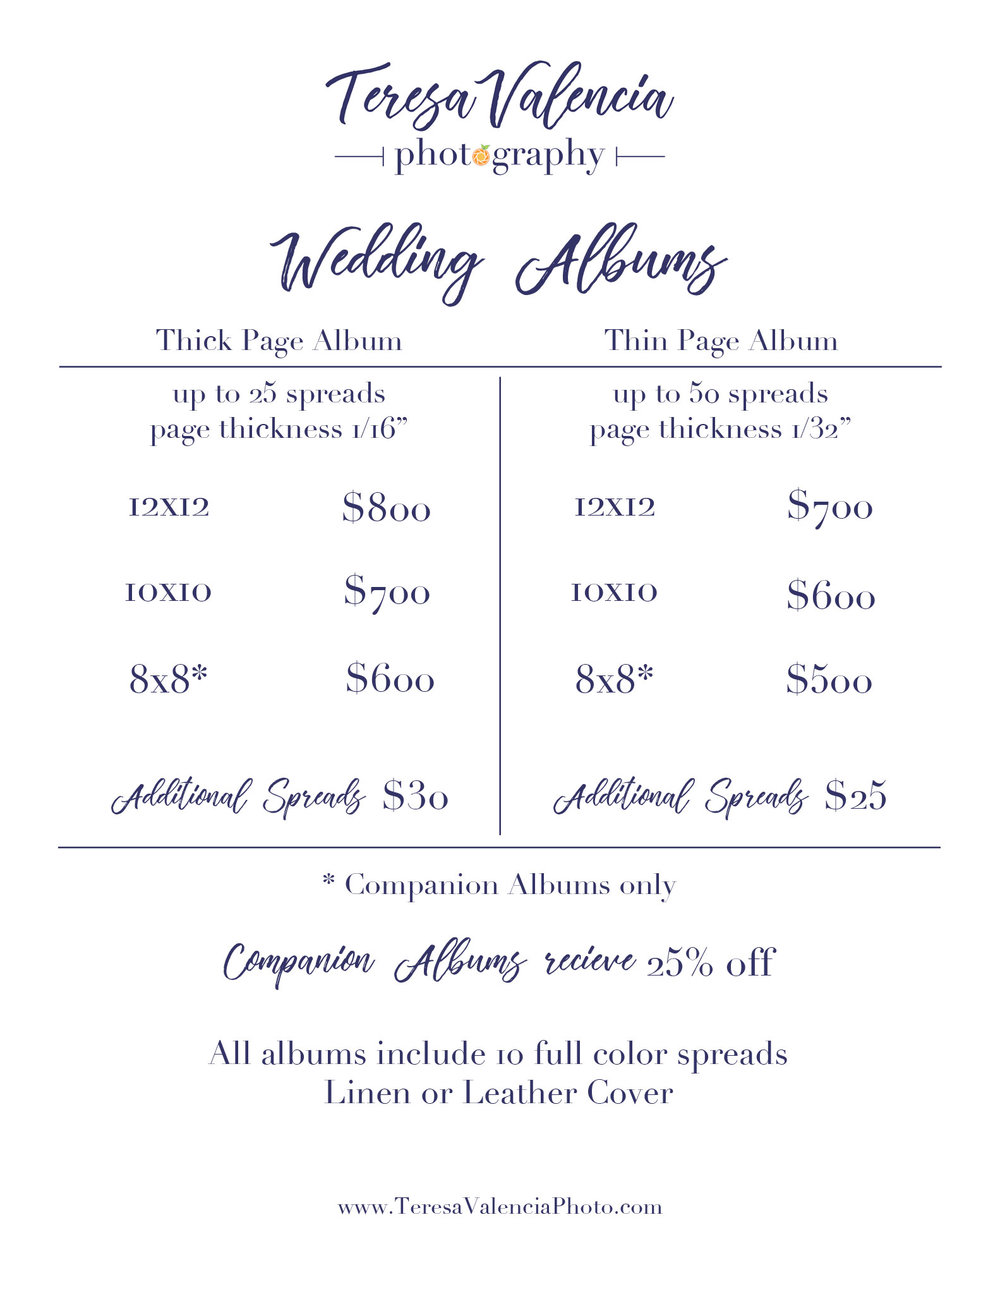 Album-Pricing_web.jpgWedding Album Pricing from Teresa Valencia Photography